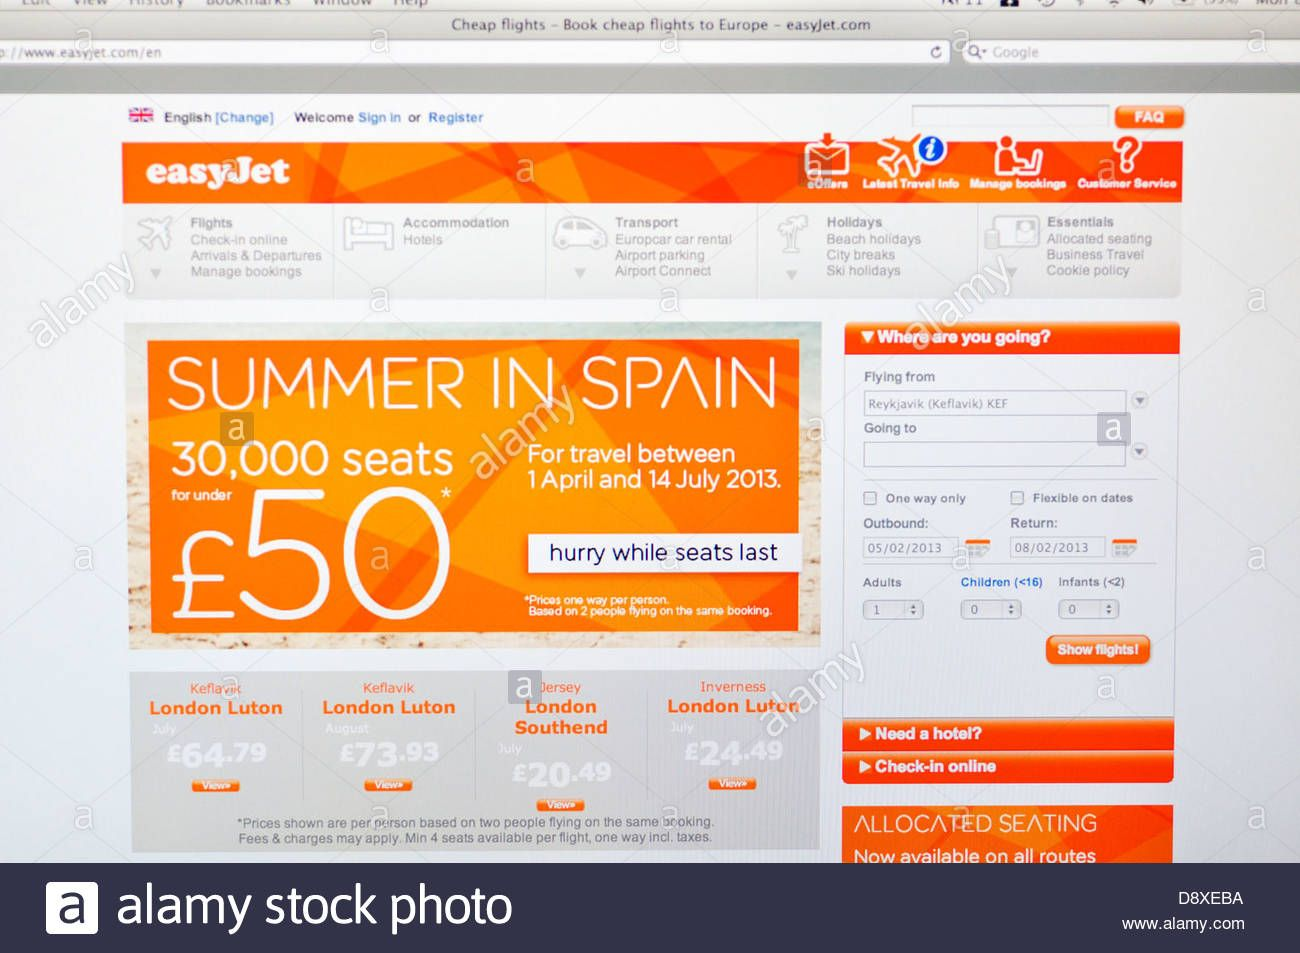 Easyjet Website Online Discount Airline Tickets Stock Discount Airline Tickets Cheap Flights To Europe Airline